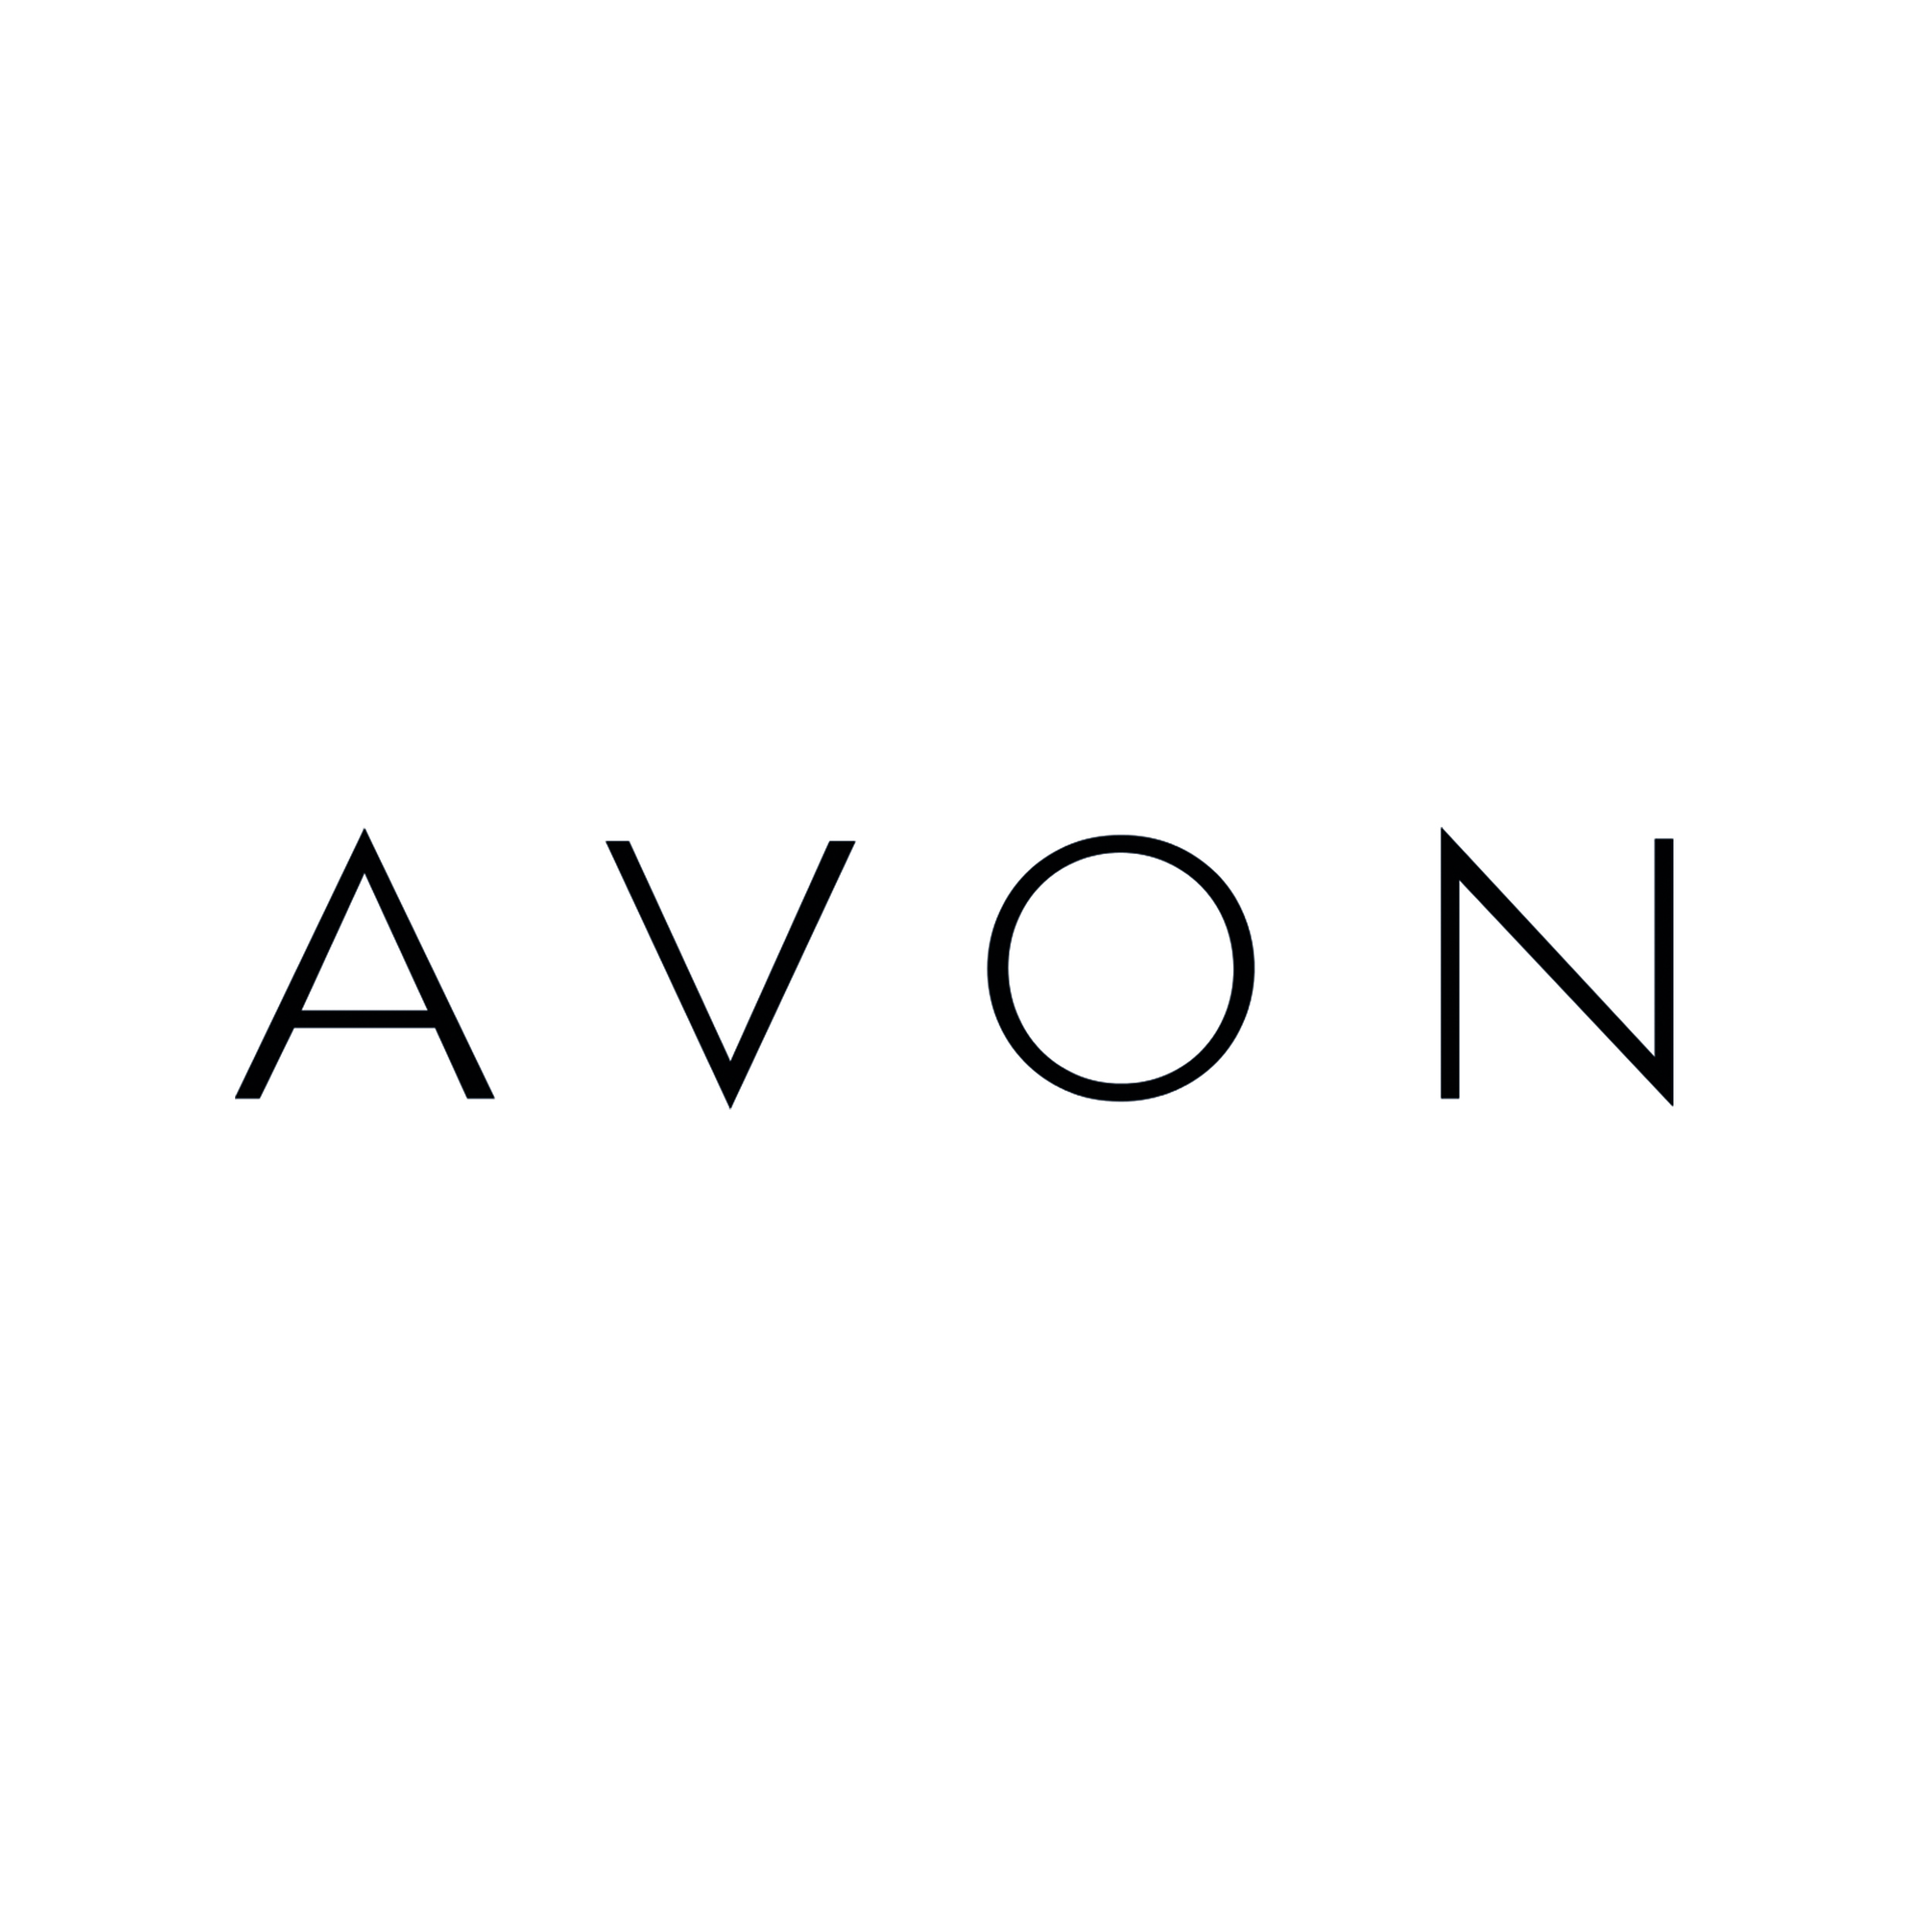 Avon resized.jpg